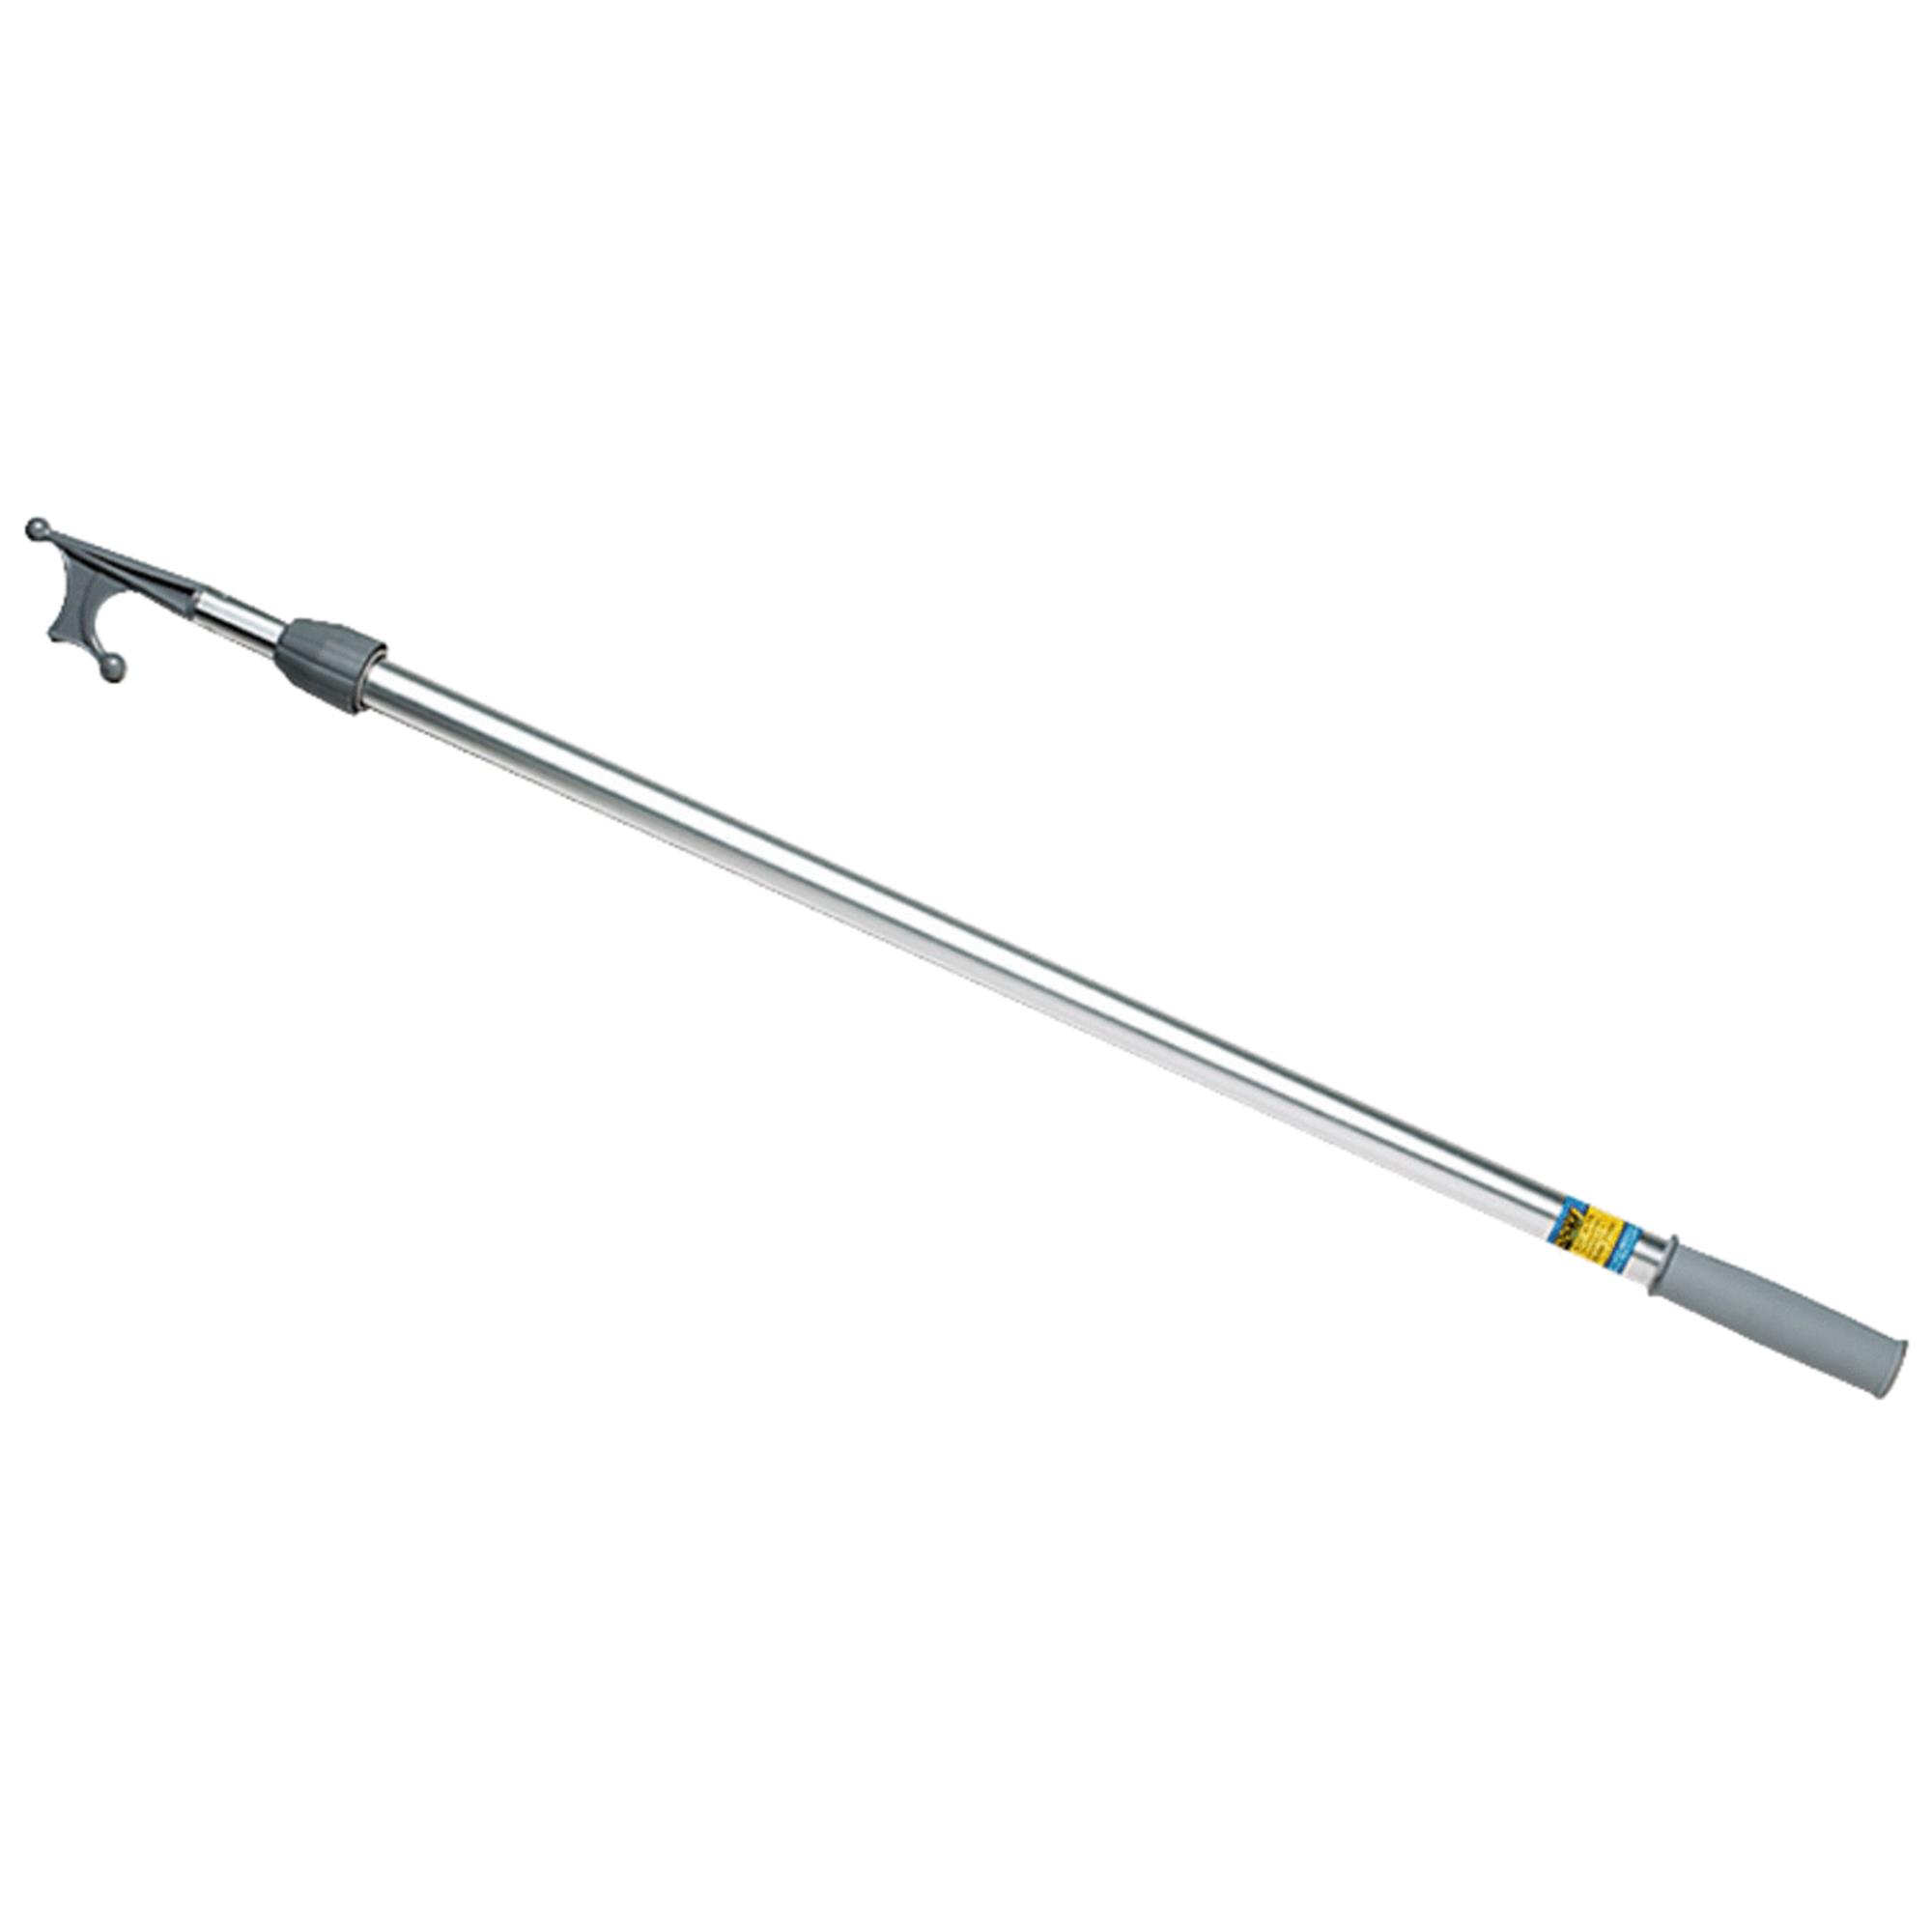 Seachoice Telescoping Boat Hook, 4' to 7'